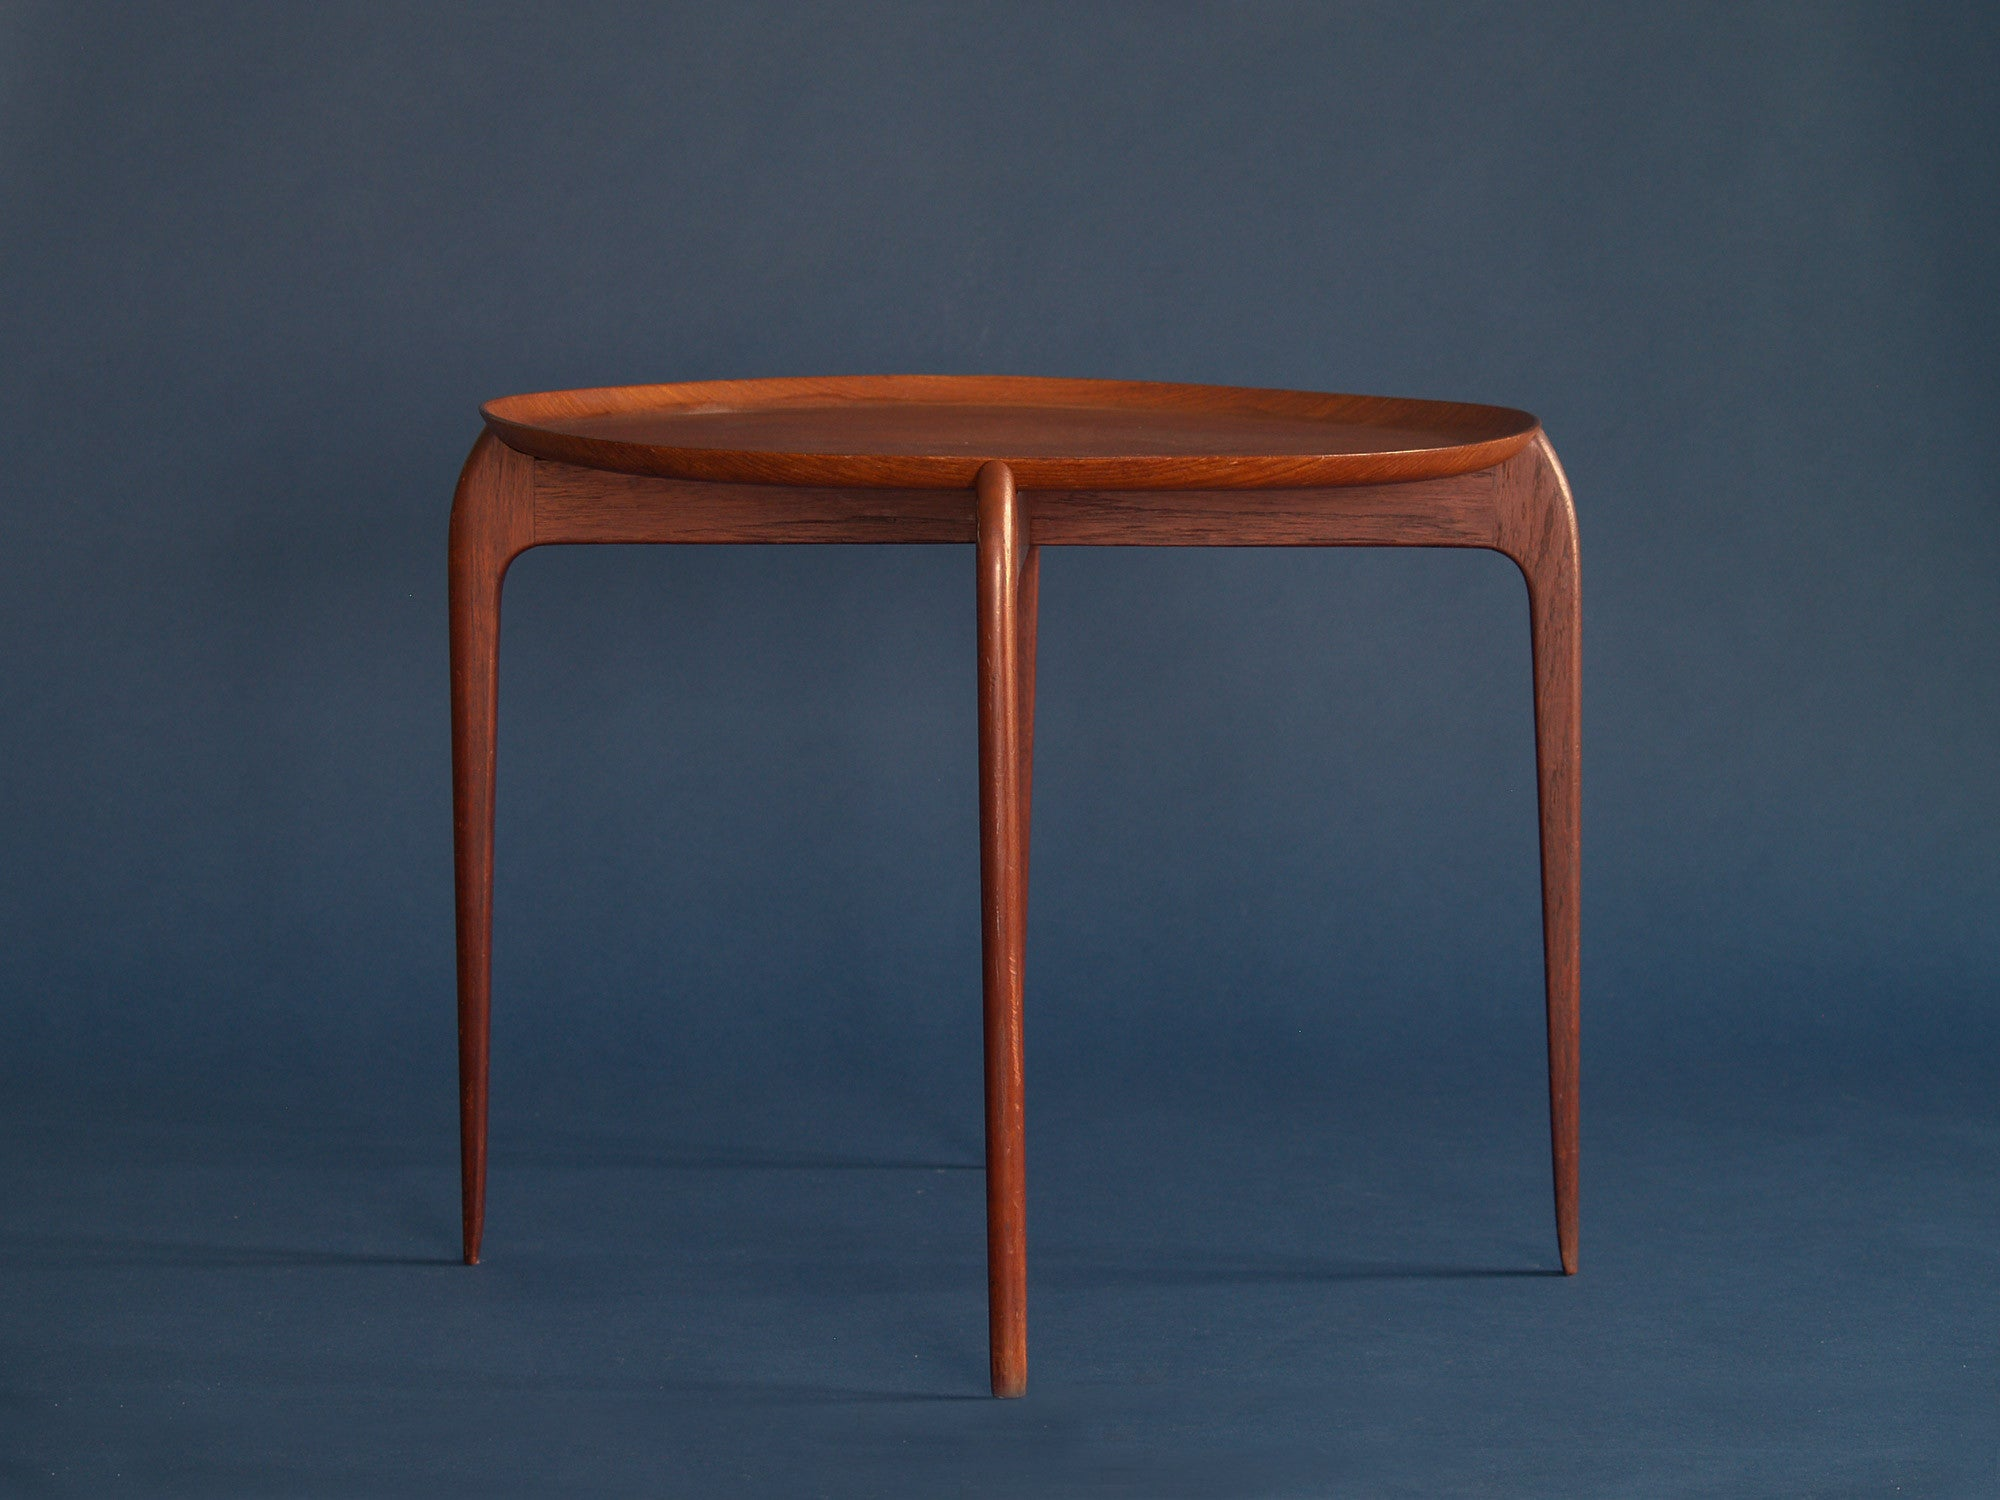 Table basse / Guéridon de Willumsen & Engholm pour Fritz Hansen, Danemark (années 1950)..Occasional coffee table by Willumsen & Engholm for Fritz Hansen, Denmark (circa 1950)